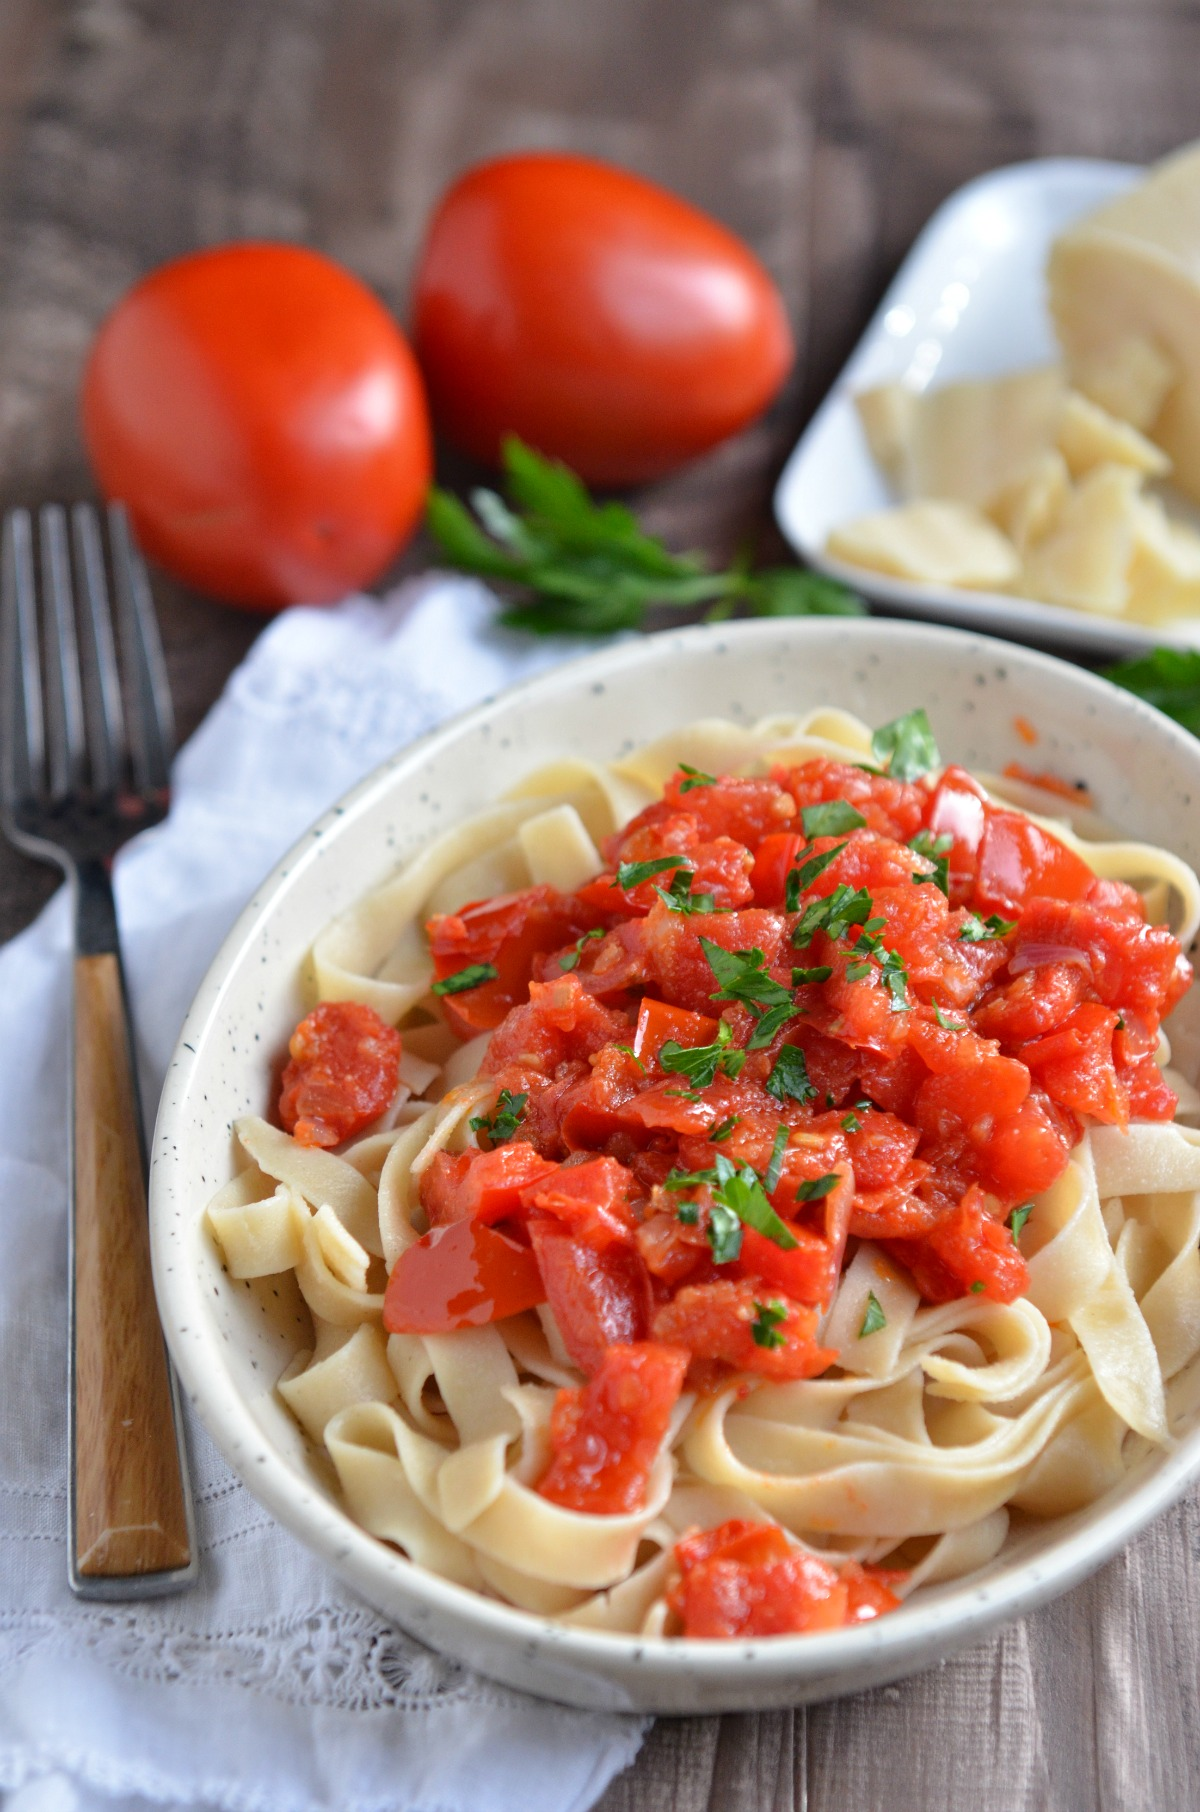 Whole Wheat Penne Pasta and Pomodoro Sauce | www.eatsparkcity.org